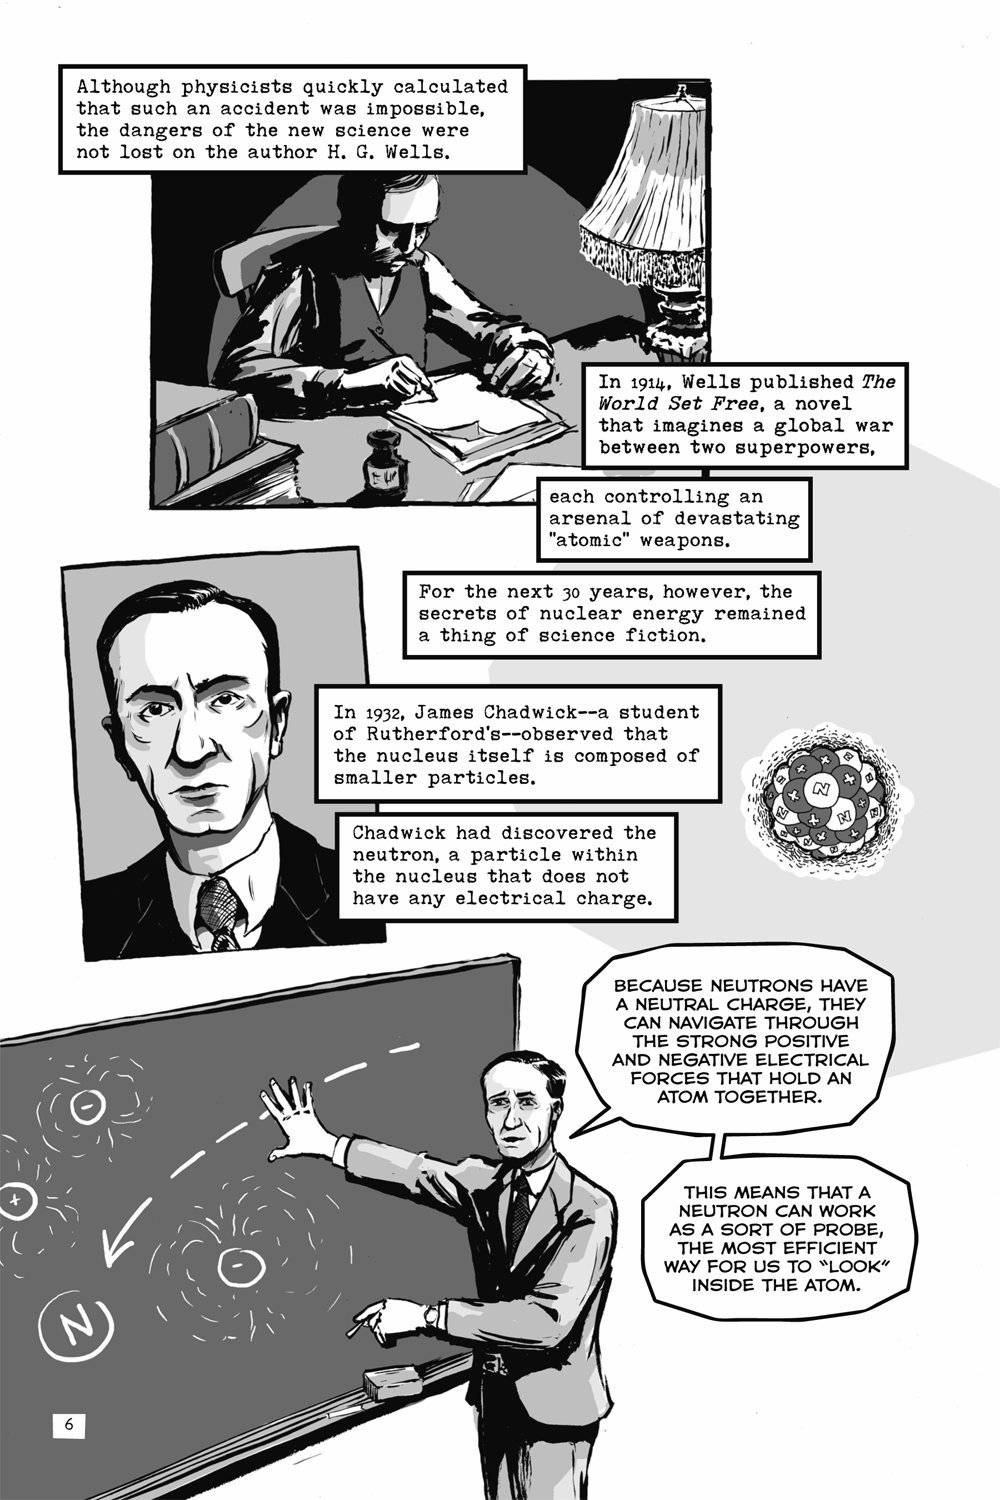 an introduction to the history of the american atomic bomb trinity The film serves as a kind of introduction to a period of history that is very  have  supplied us with more specific details about oppenheimer's fall from favor   trinity: j robert oppen- heimer and the atomic bomb, a.